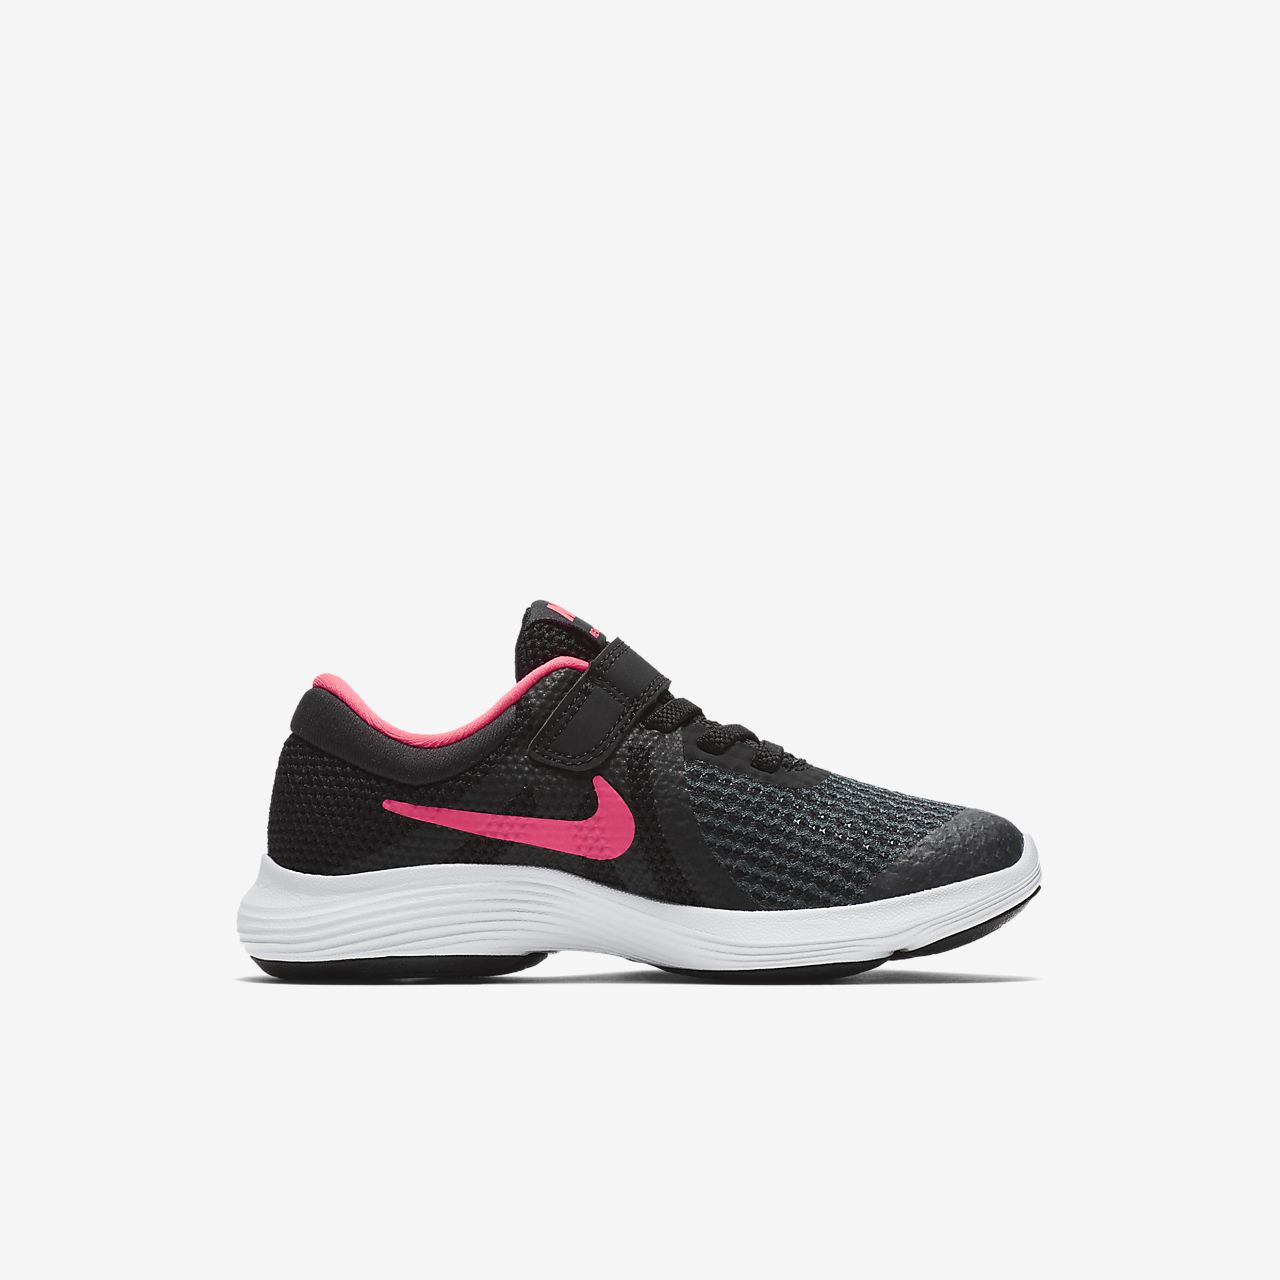 ... Nike Revolution 4 Younger Kids' Shoe